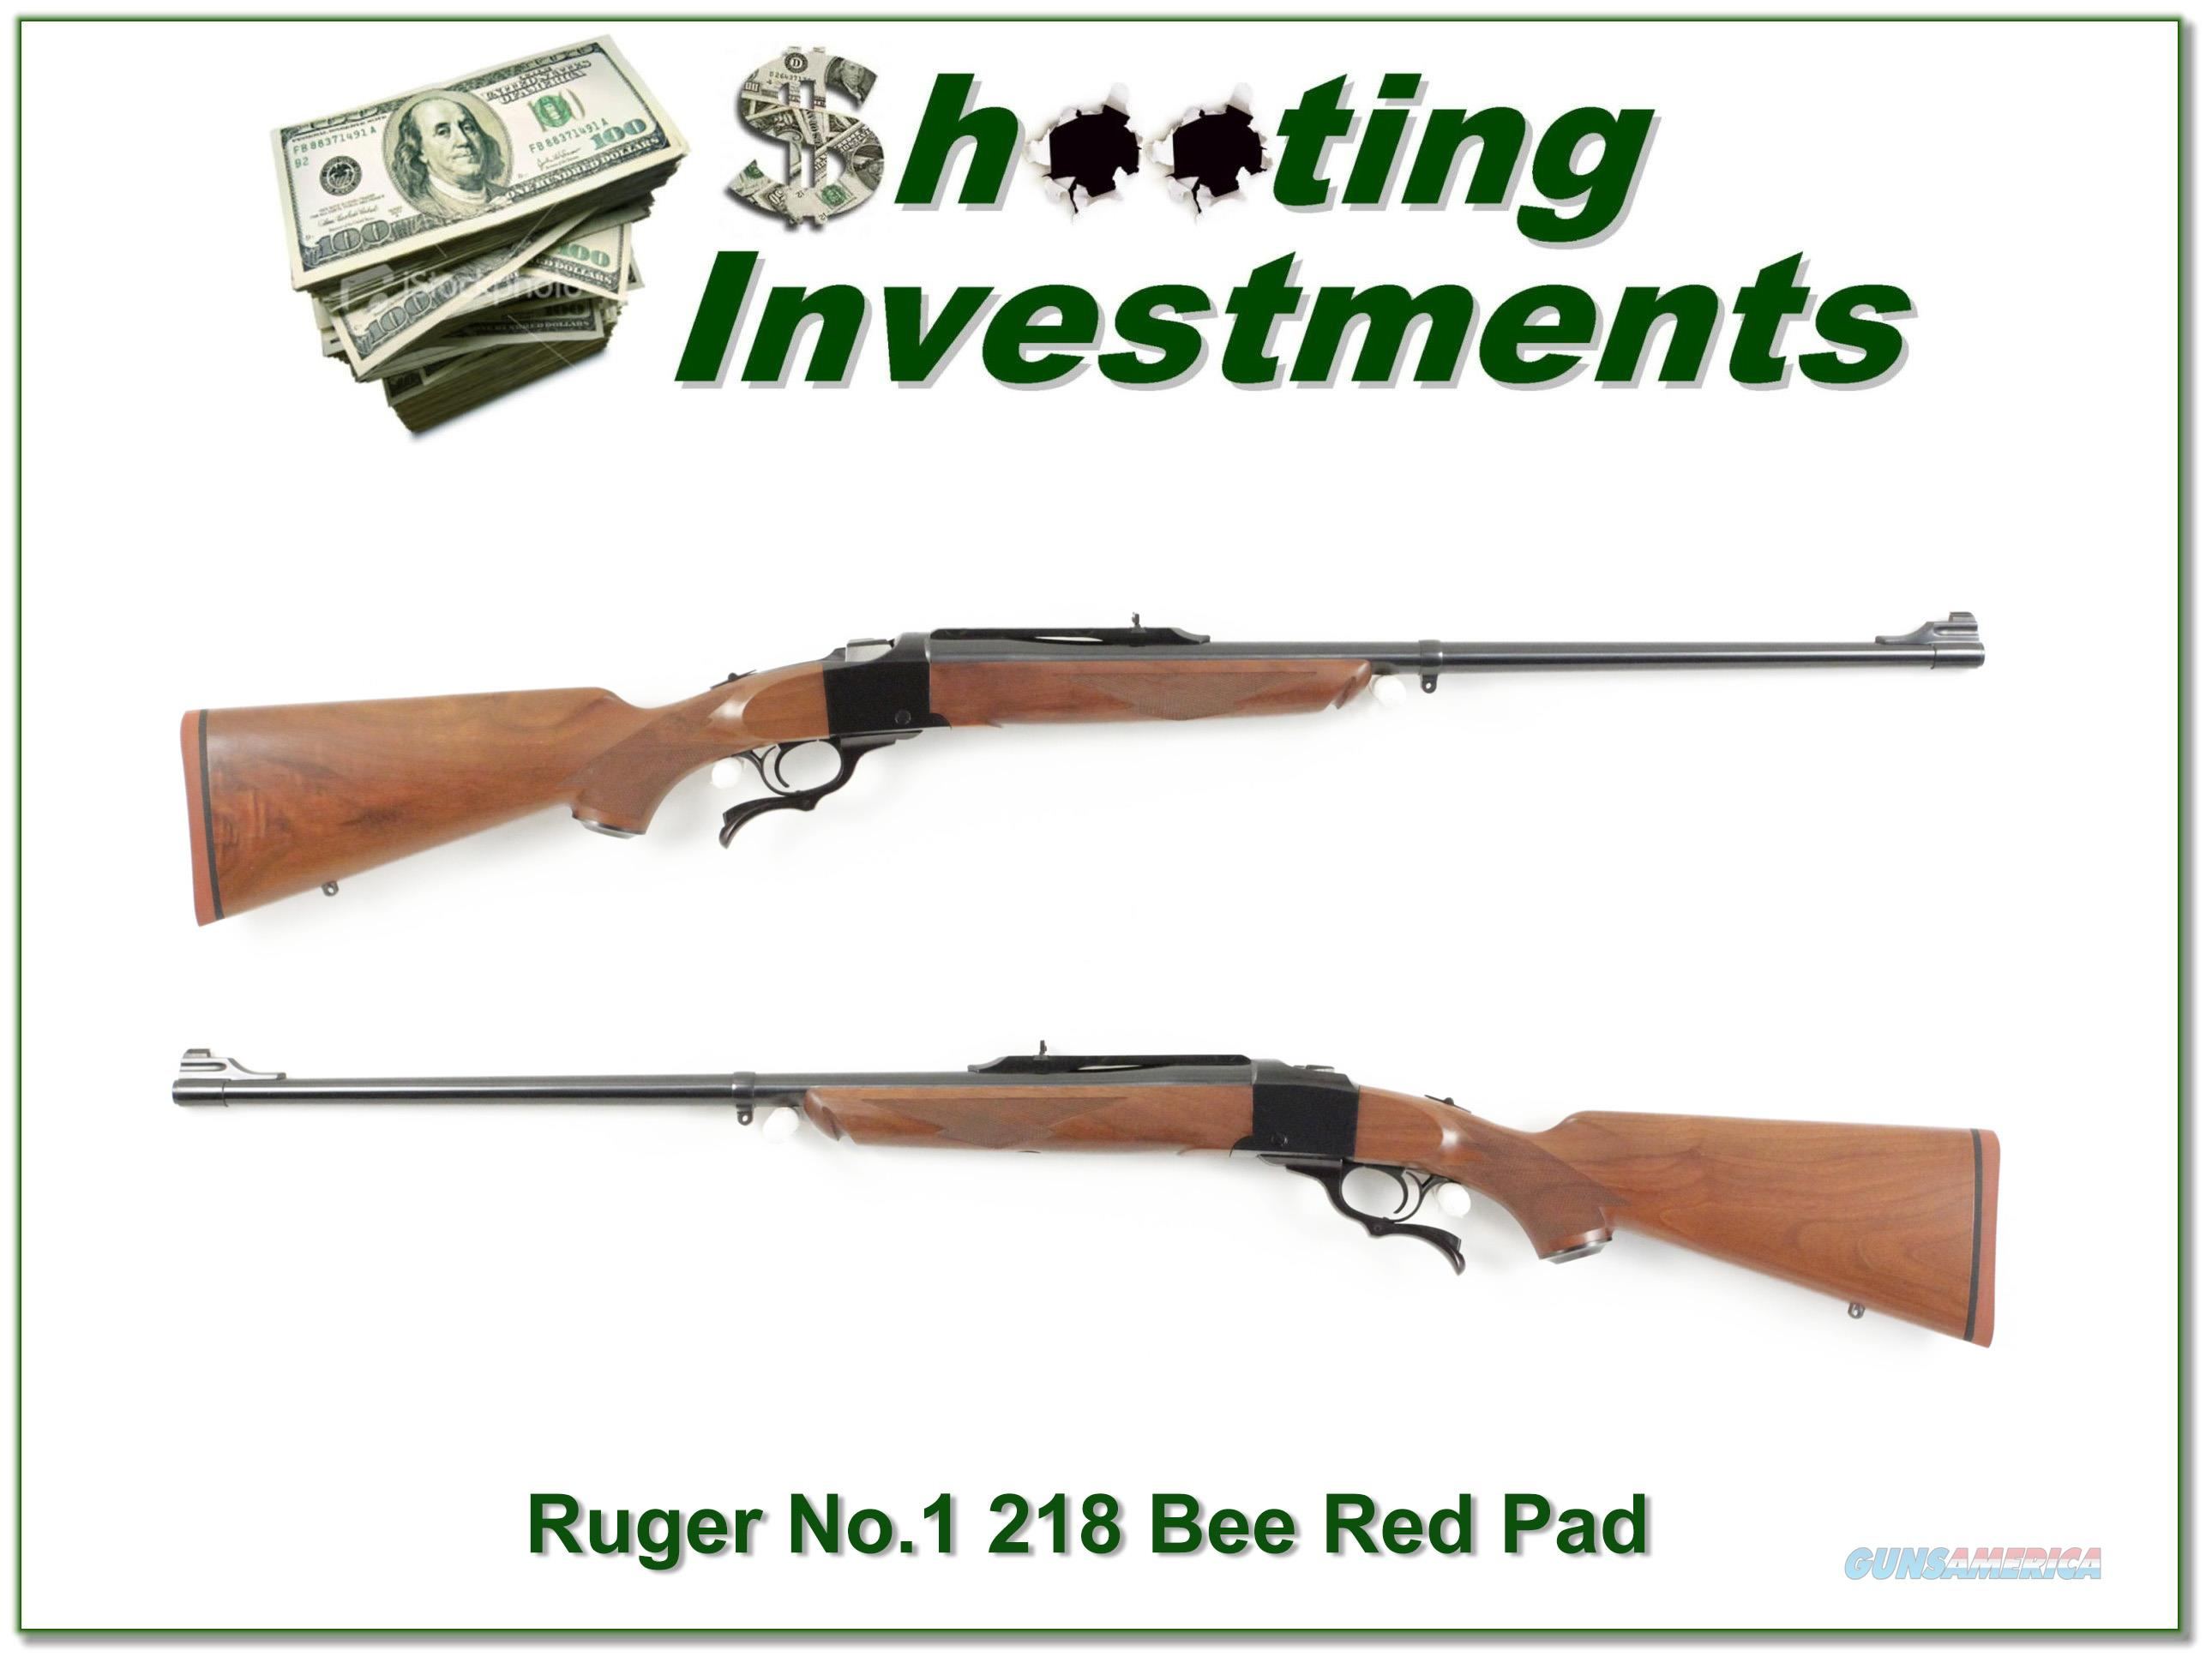 Ruger No.1 older Red Pad 218 Bee unfired MINT!  Guns > Rifles > Ruger Rifles > #1 Type